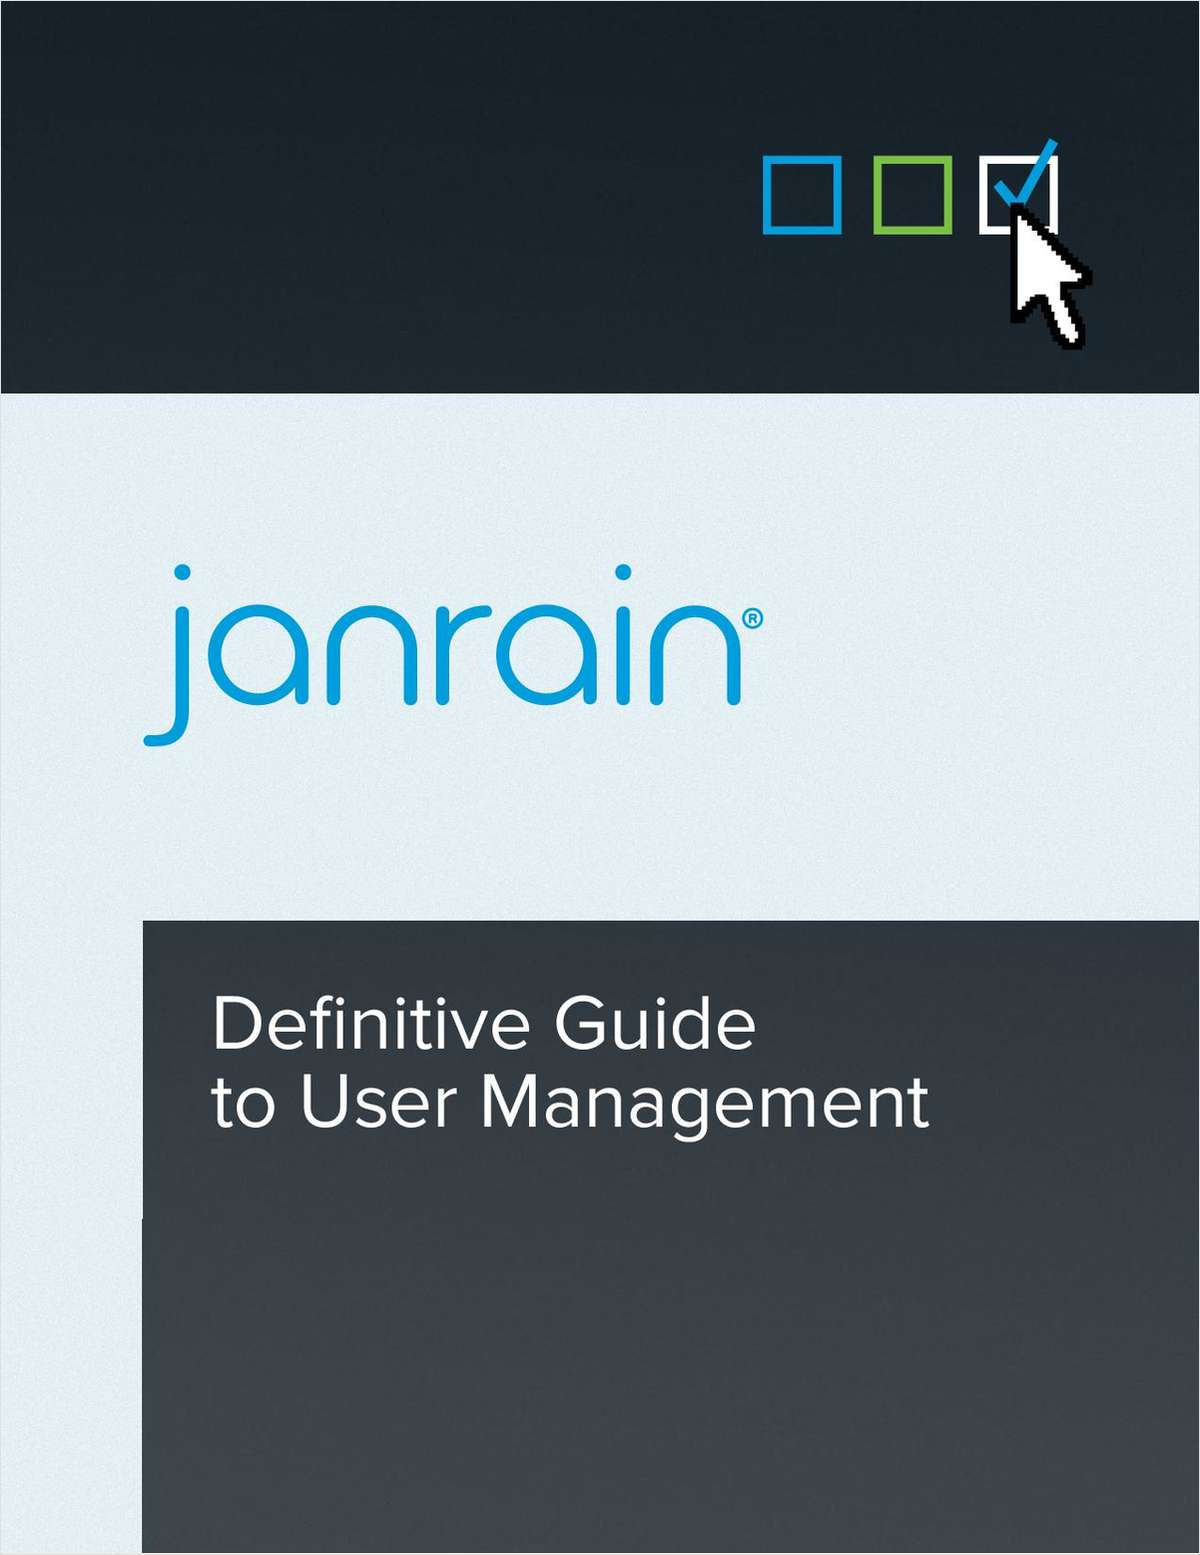 The Definitive Guide to User Management